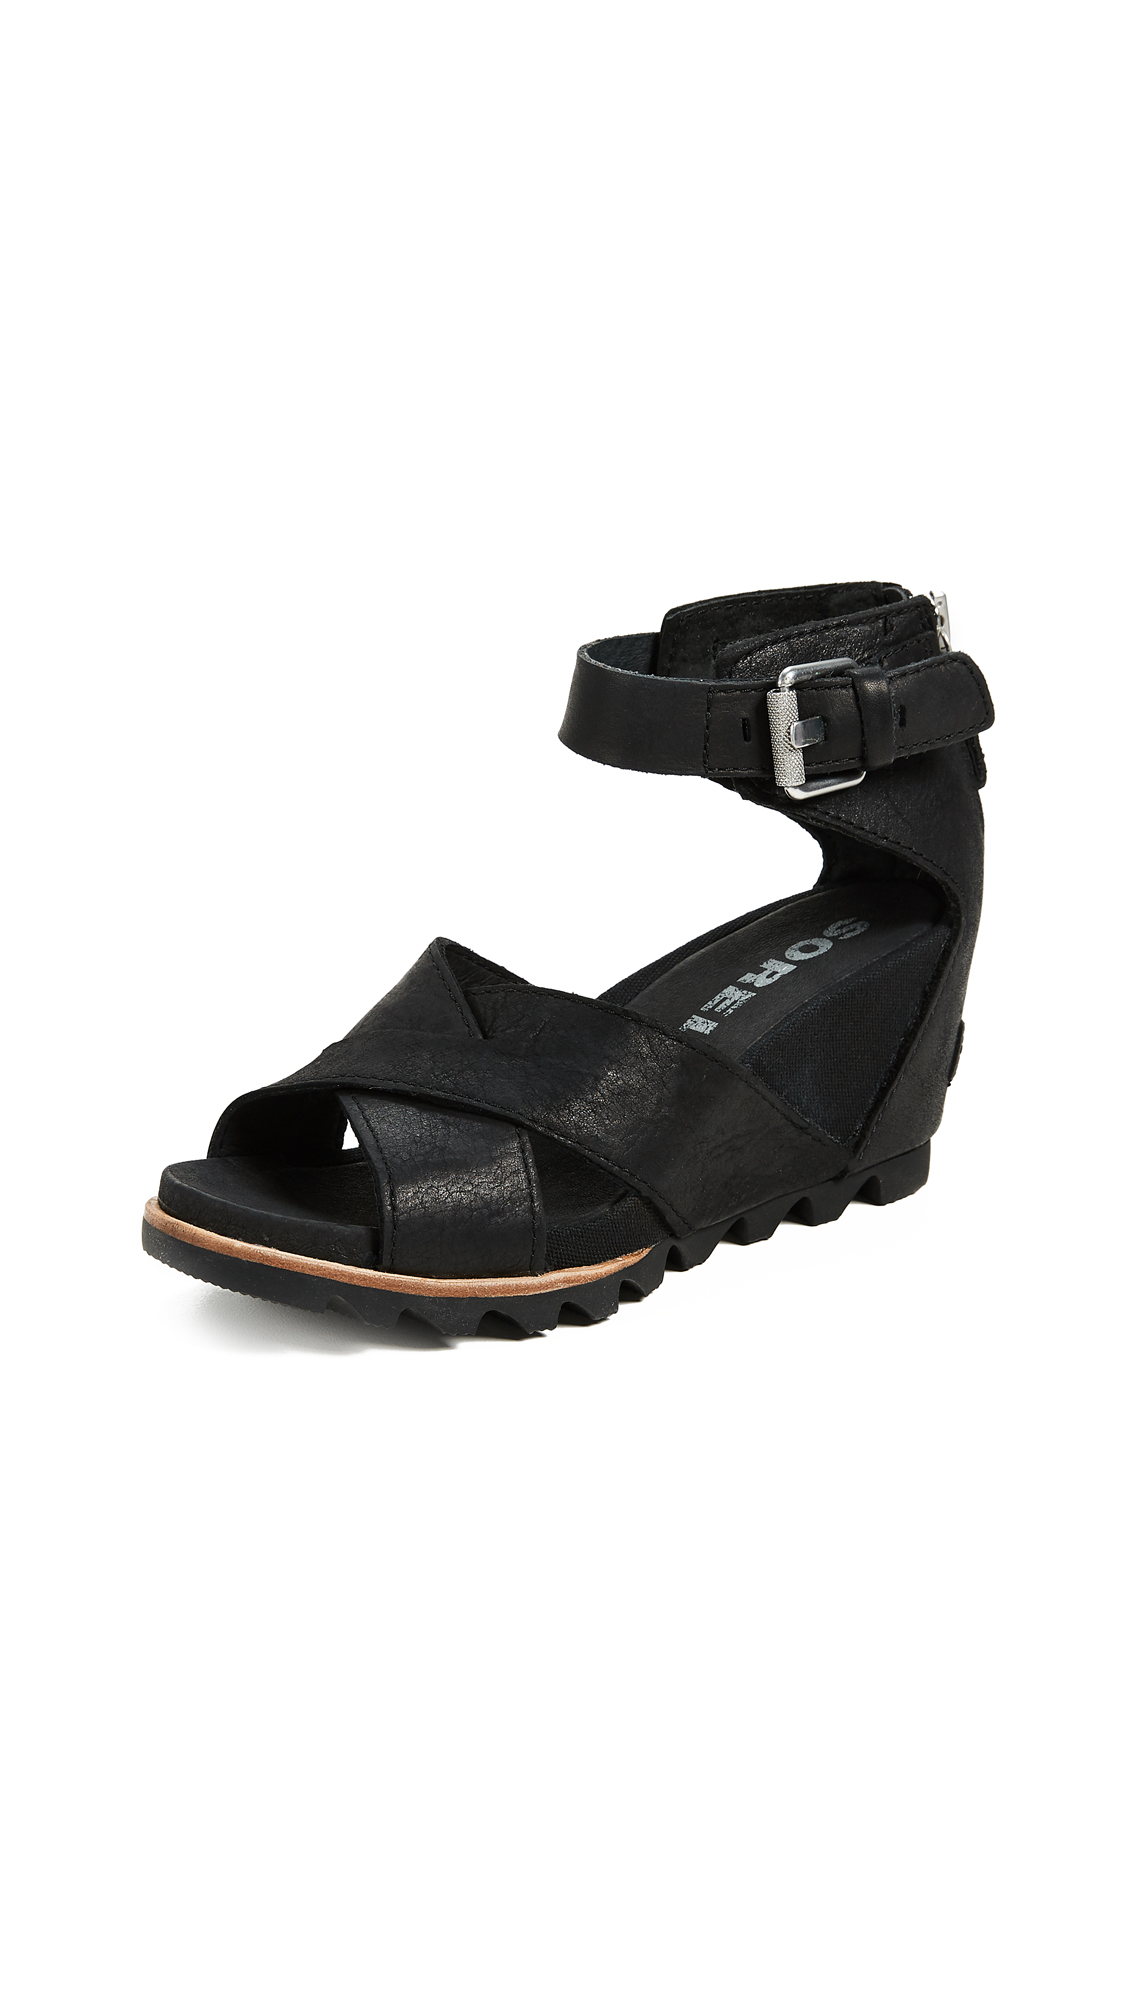 Sorel Joanie II Sandals - Black